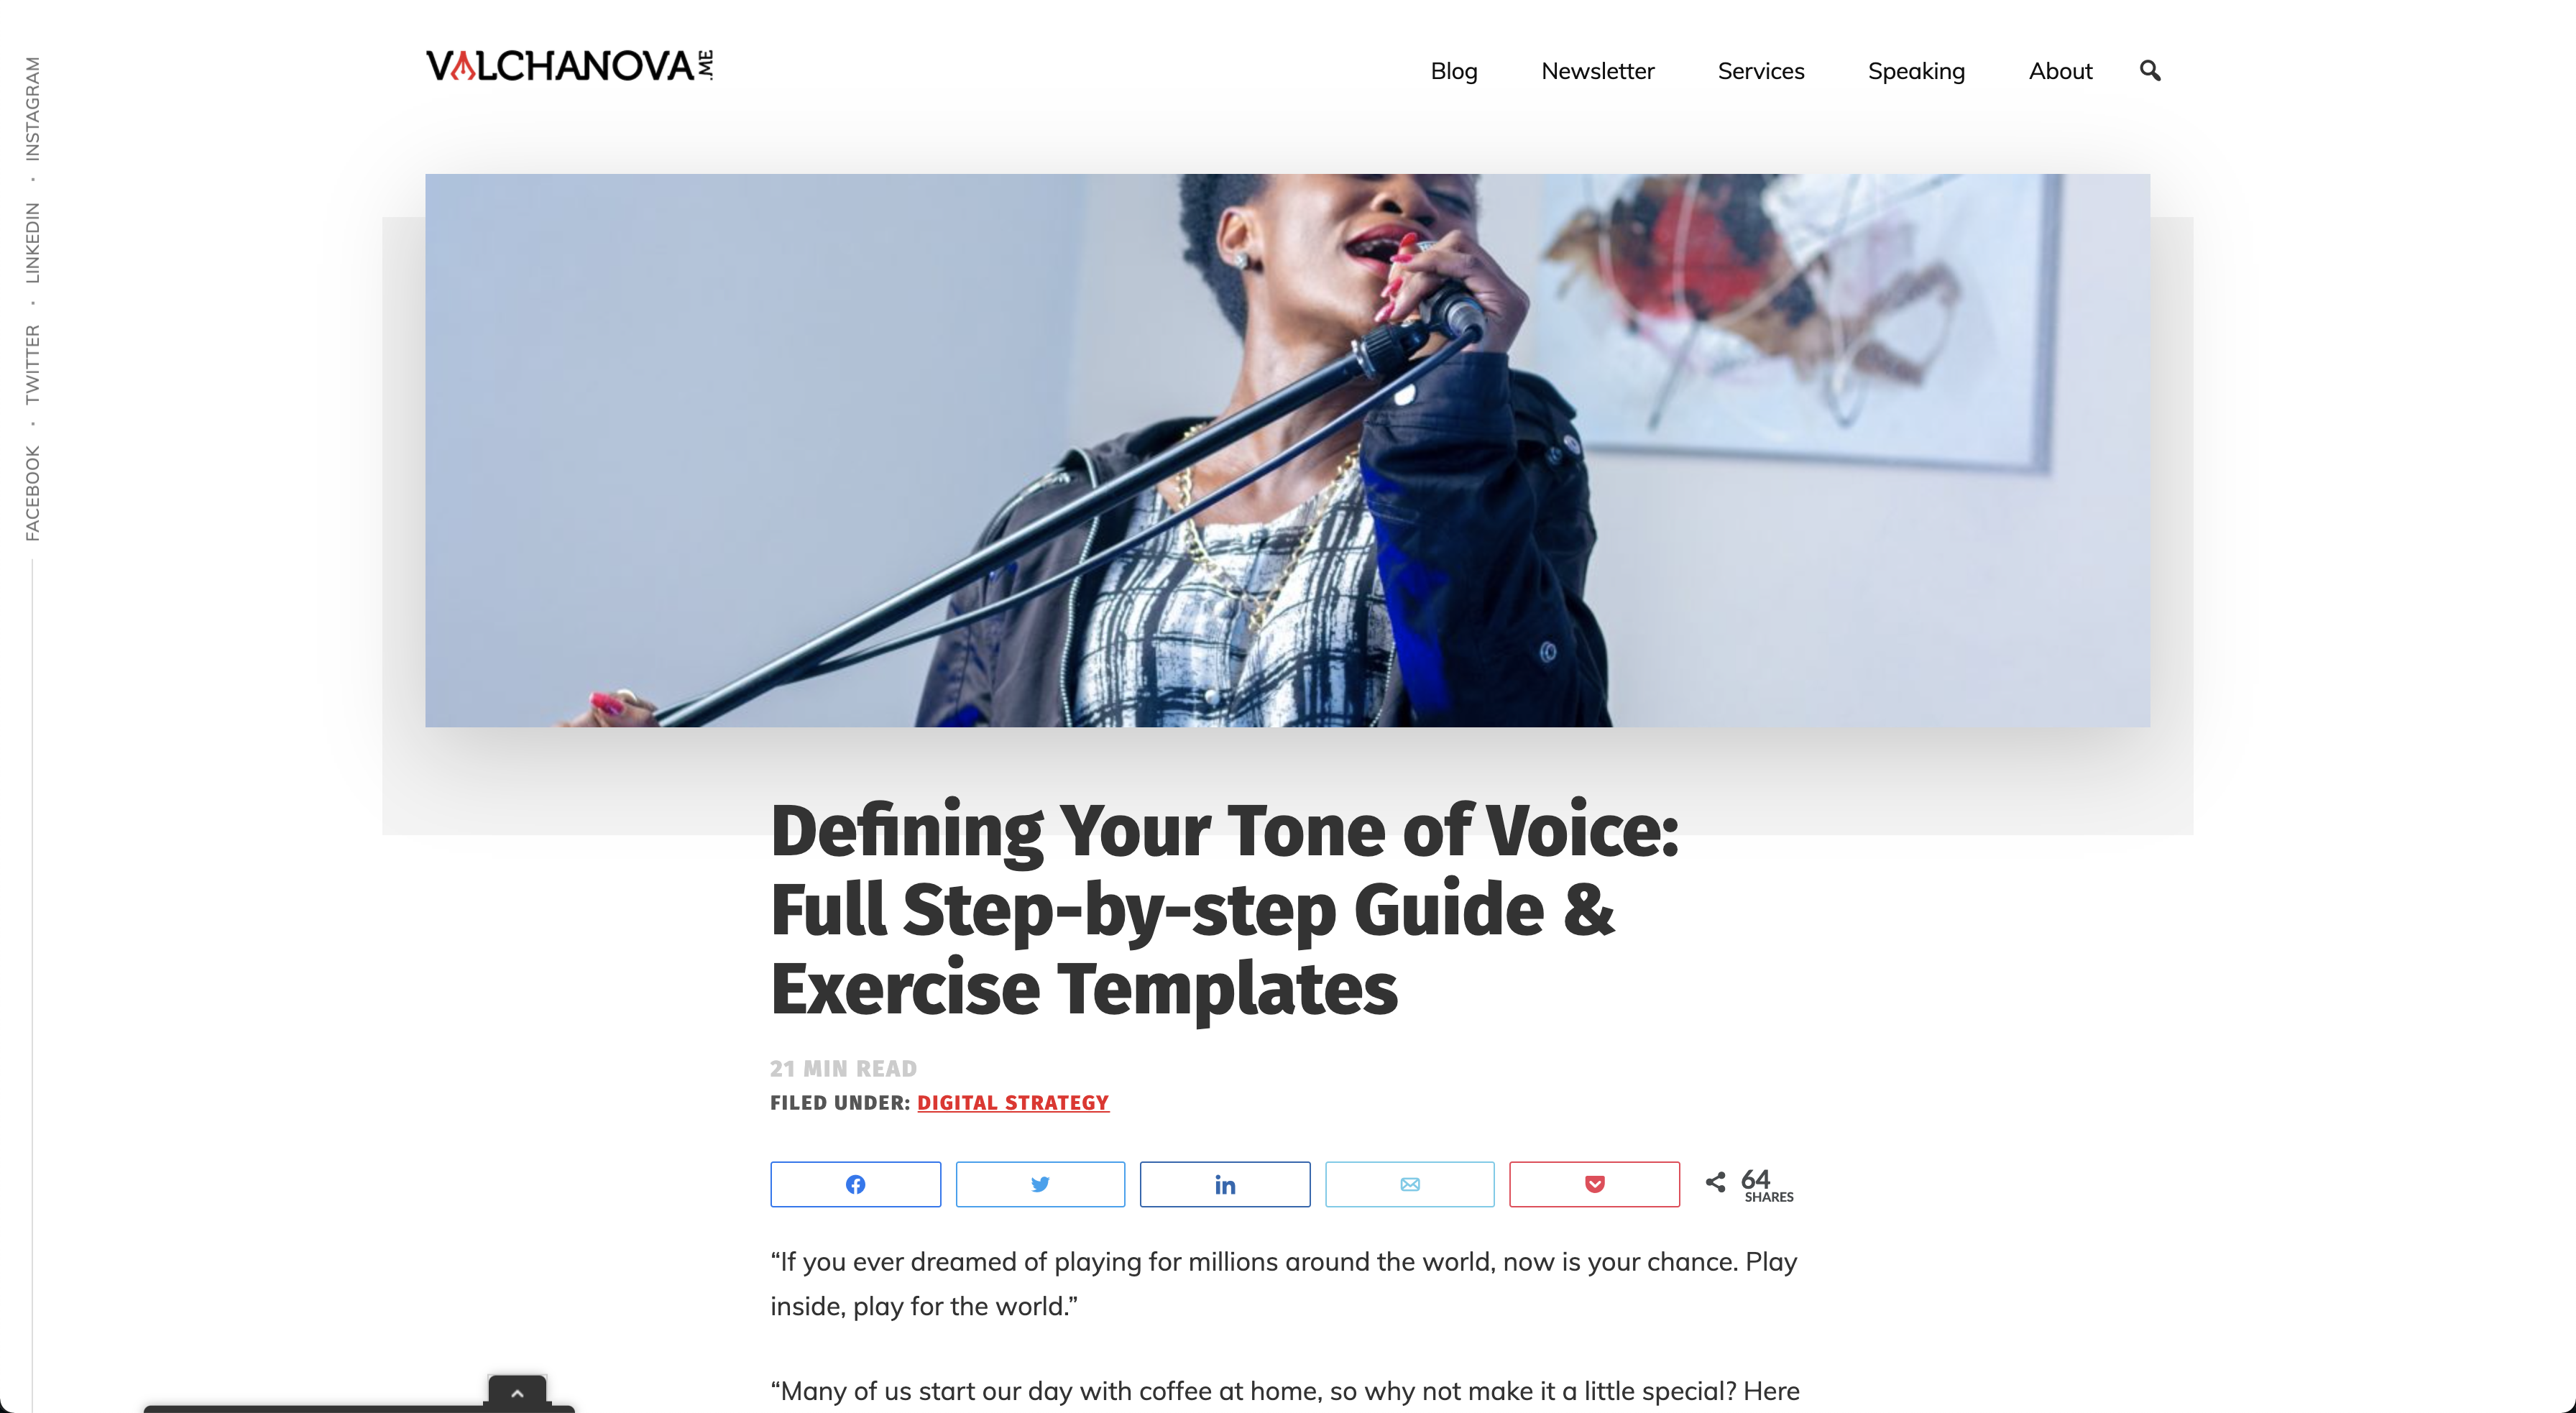 Defining Your Tone of Voice: Full Step-by-step Guide & Exercise Templates